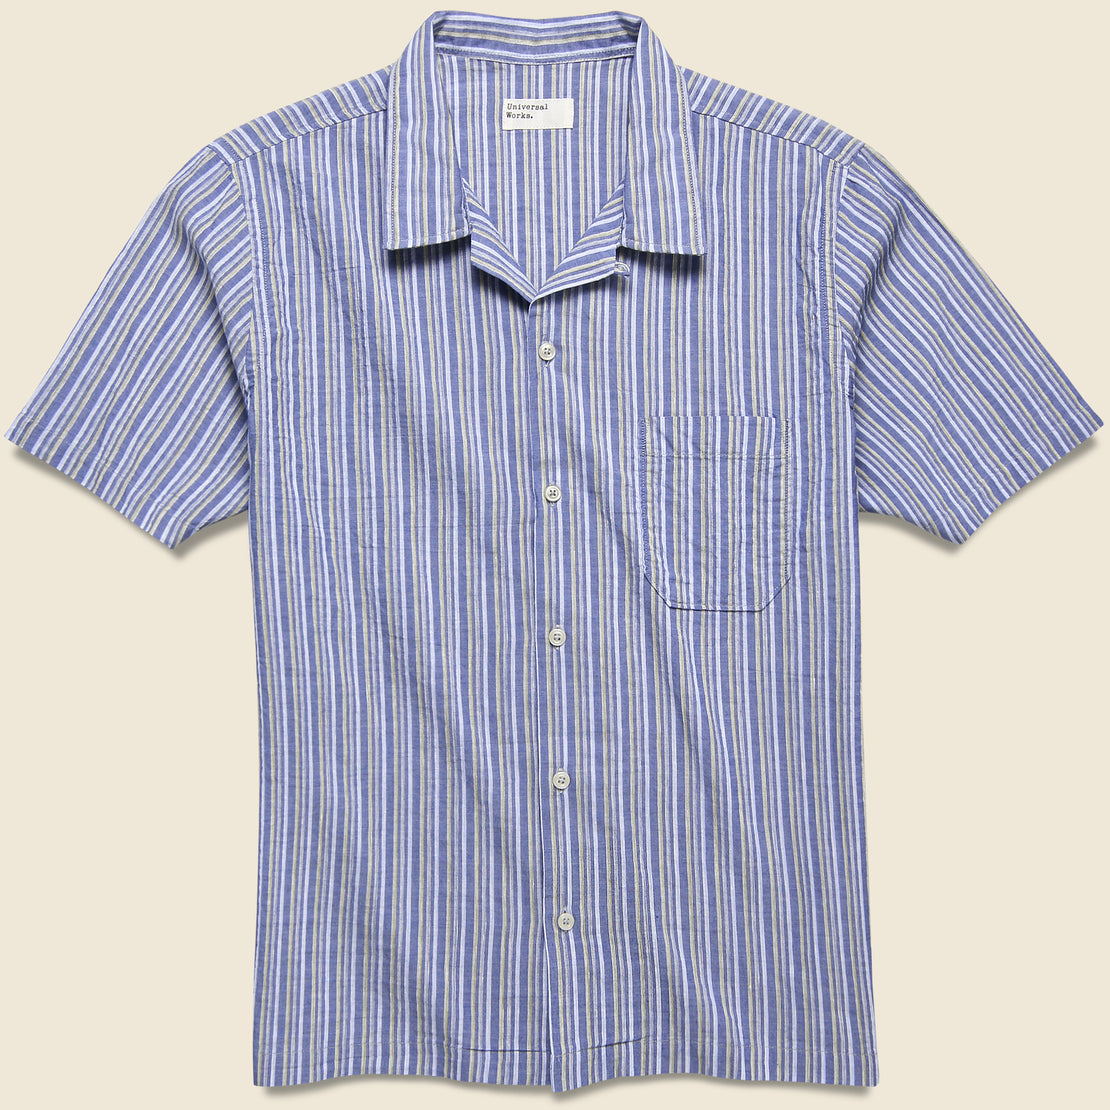 Universal Works Road Shirt - Blue Elton 2 Stripe